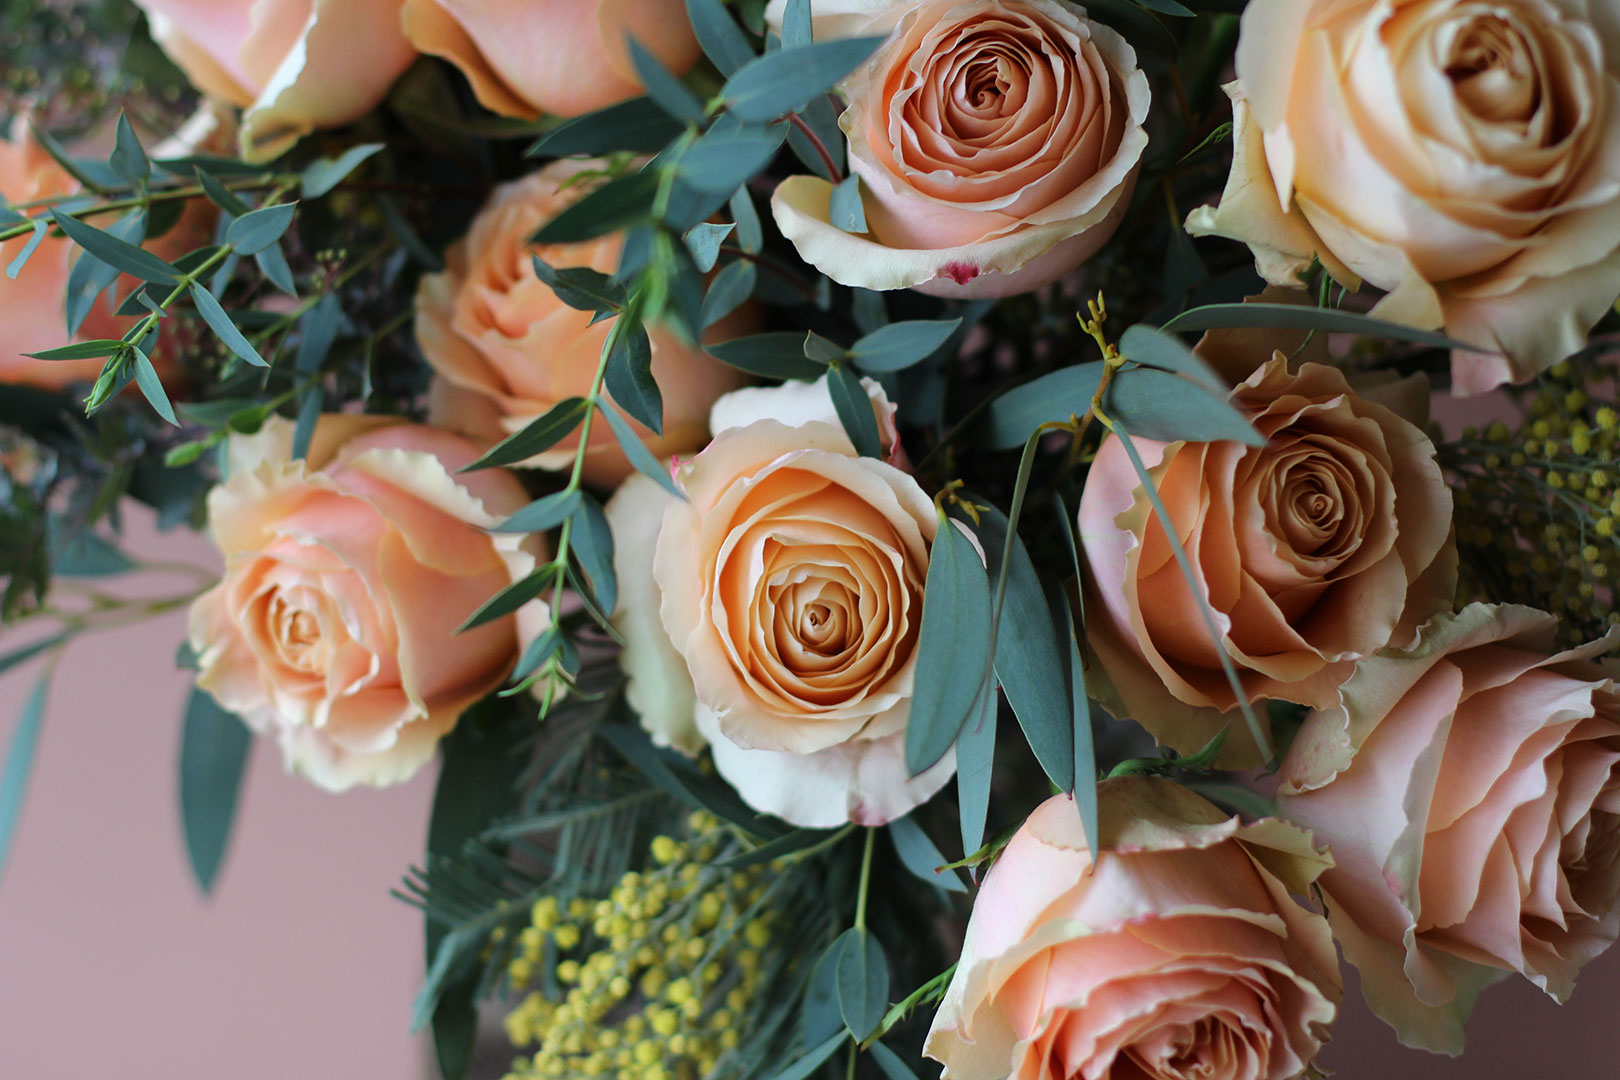 Portland Florist Delivery Plants Local Flower Arrangement Ranunculus Roses Dozen Locally Made Anniversary Sympathy Birthday Congratulations Congrats Valentine's Day